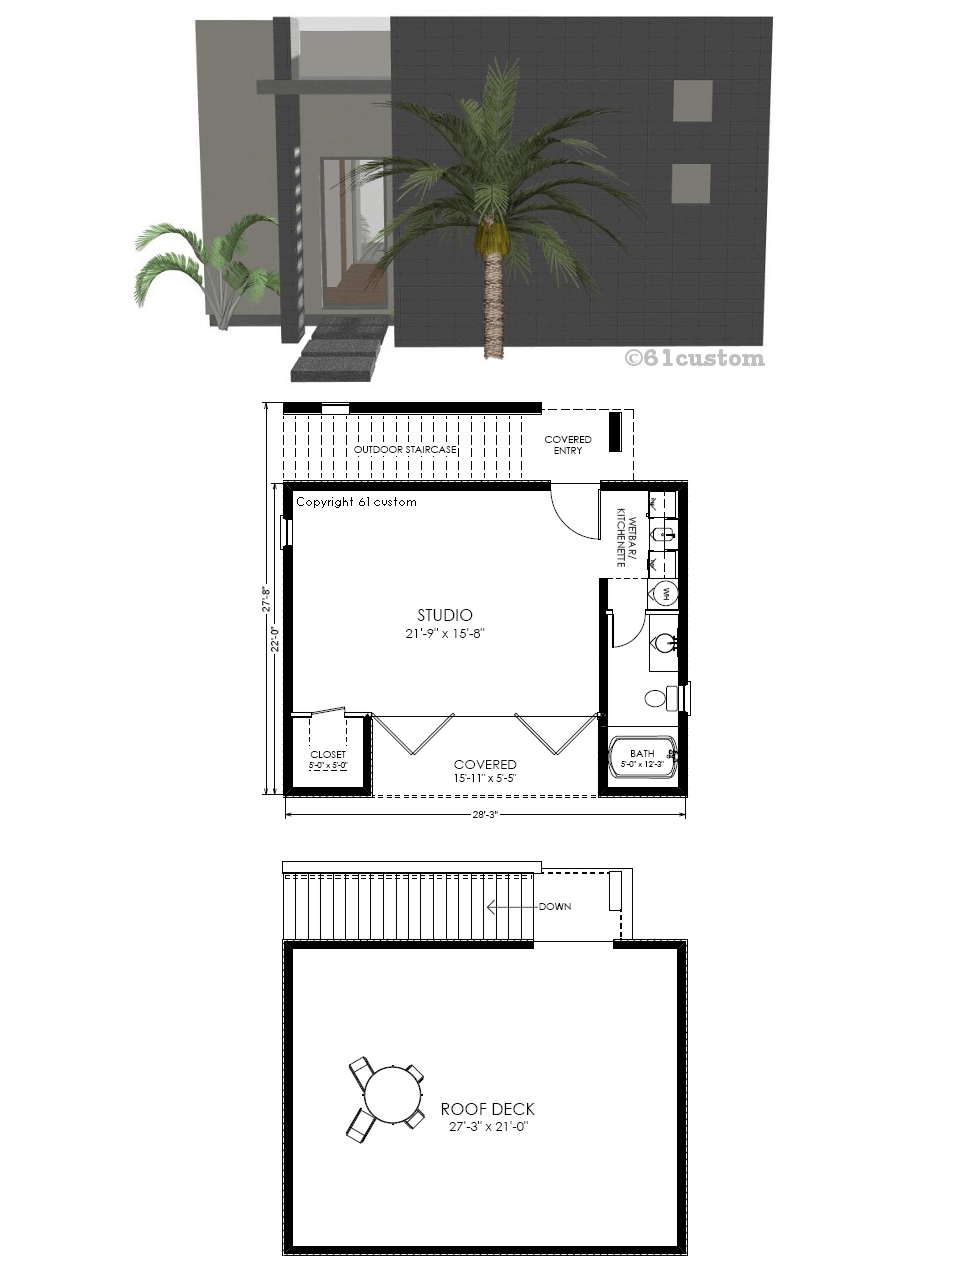 Guest house plan modern studio casita house design and Studio house plans one bedroom